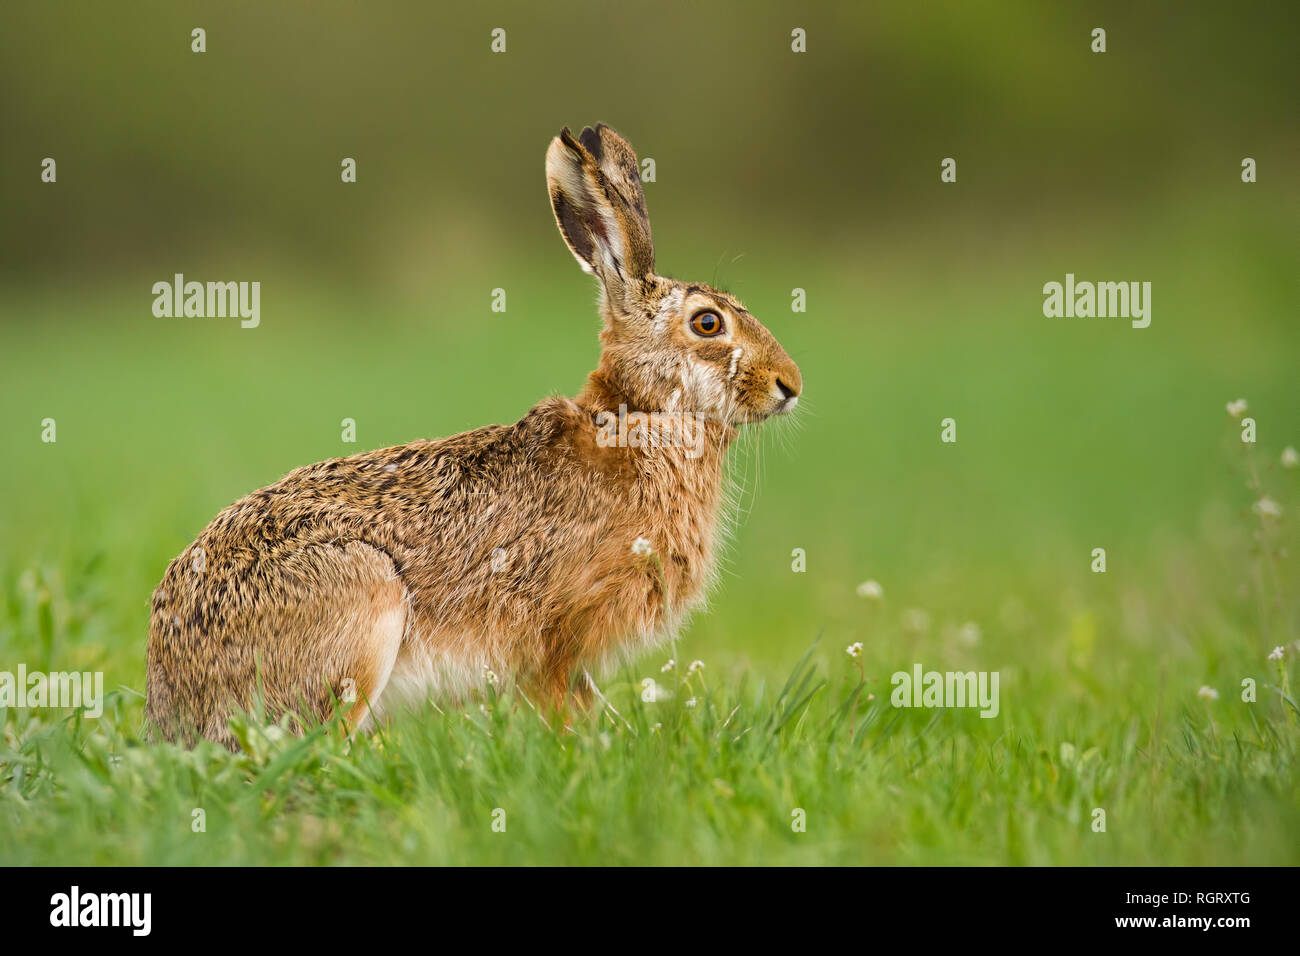 European hare in spring with fresh looking green blurred background - Stock Image